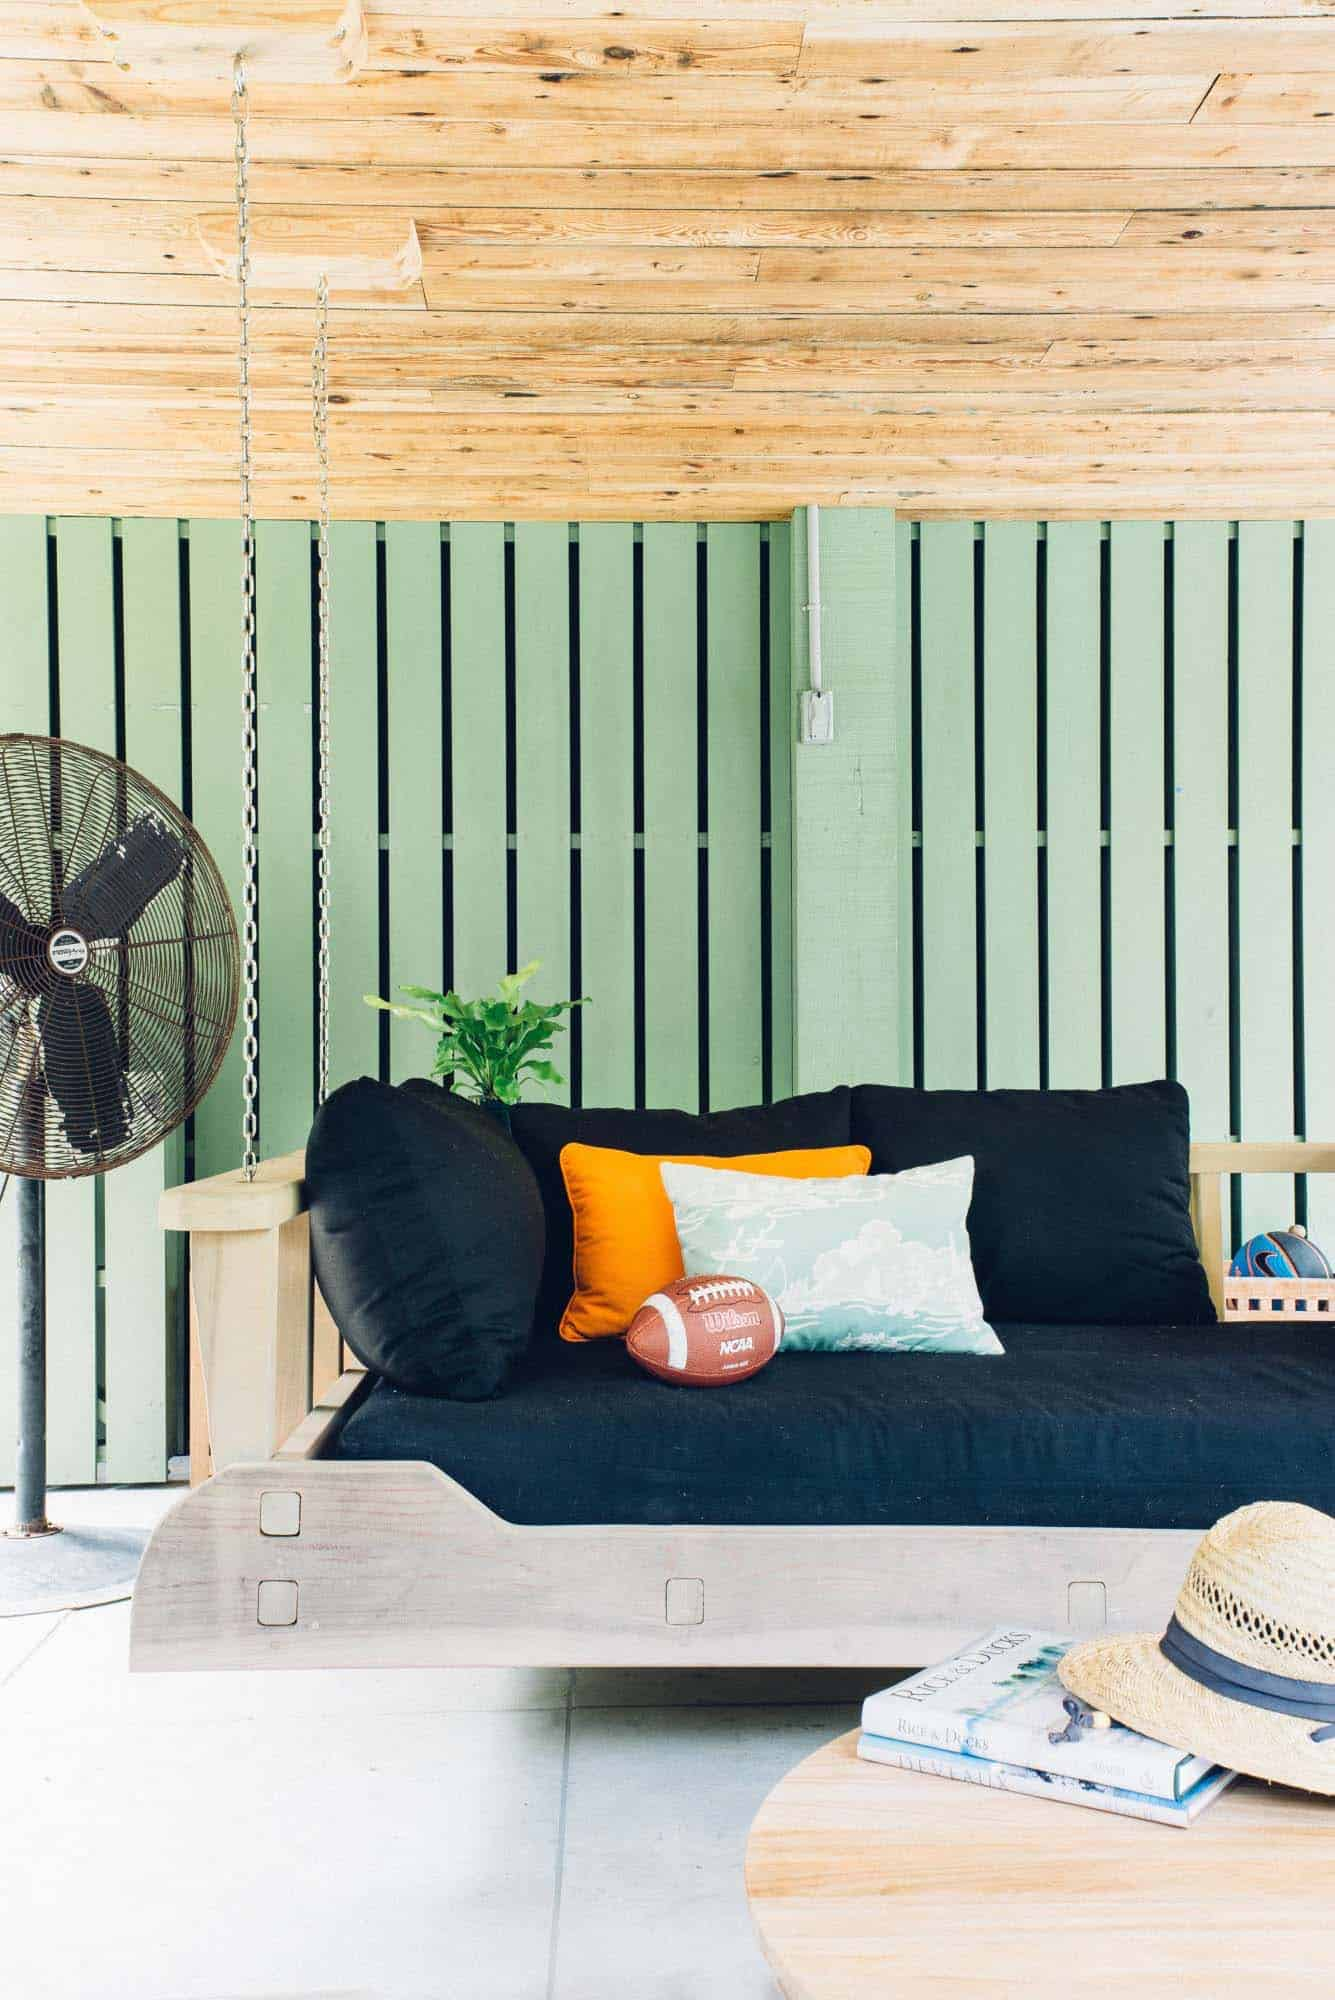 Midcentury Collected-Cortney Bishop Design-21-1 Kindesign